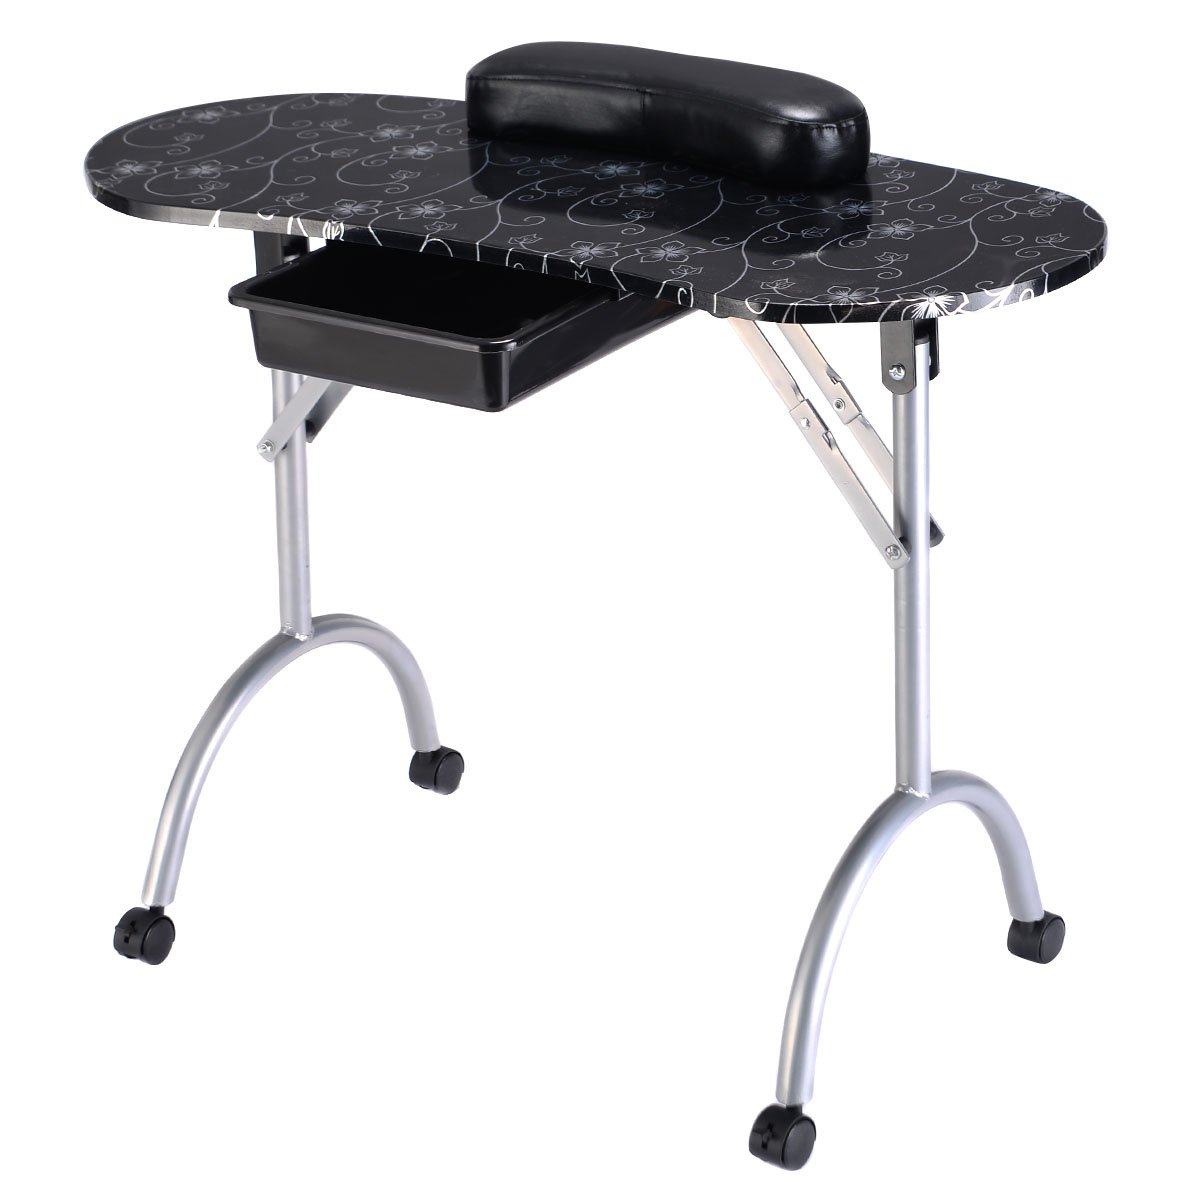 PROSPERLY U.S.Product Black Flower Art Manicure Nail Table Portable Station Desk Spa Beauty Salon Equipment New